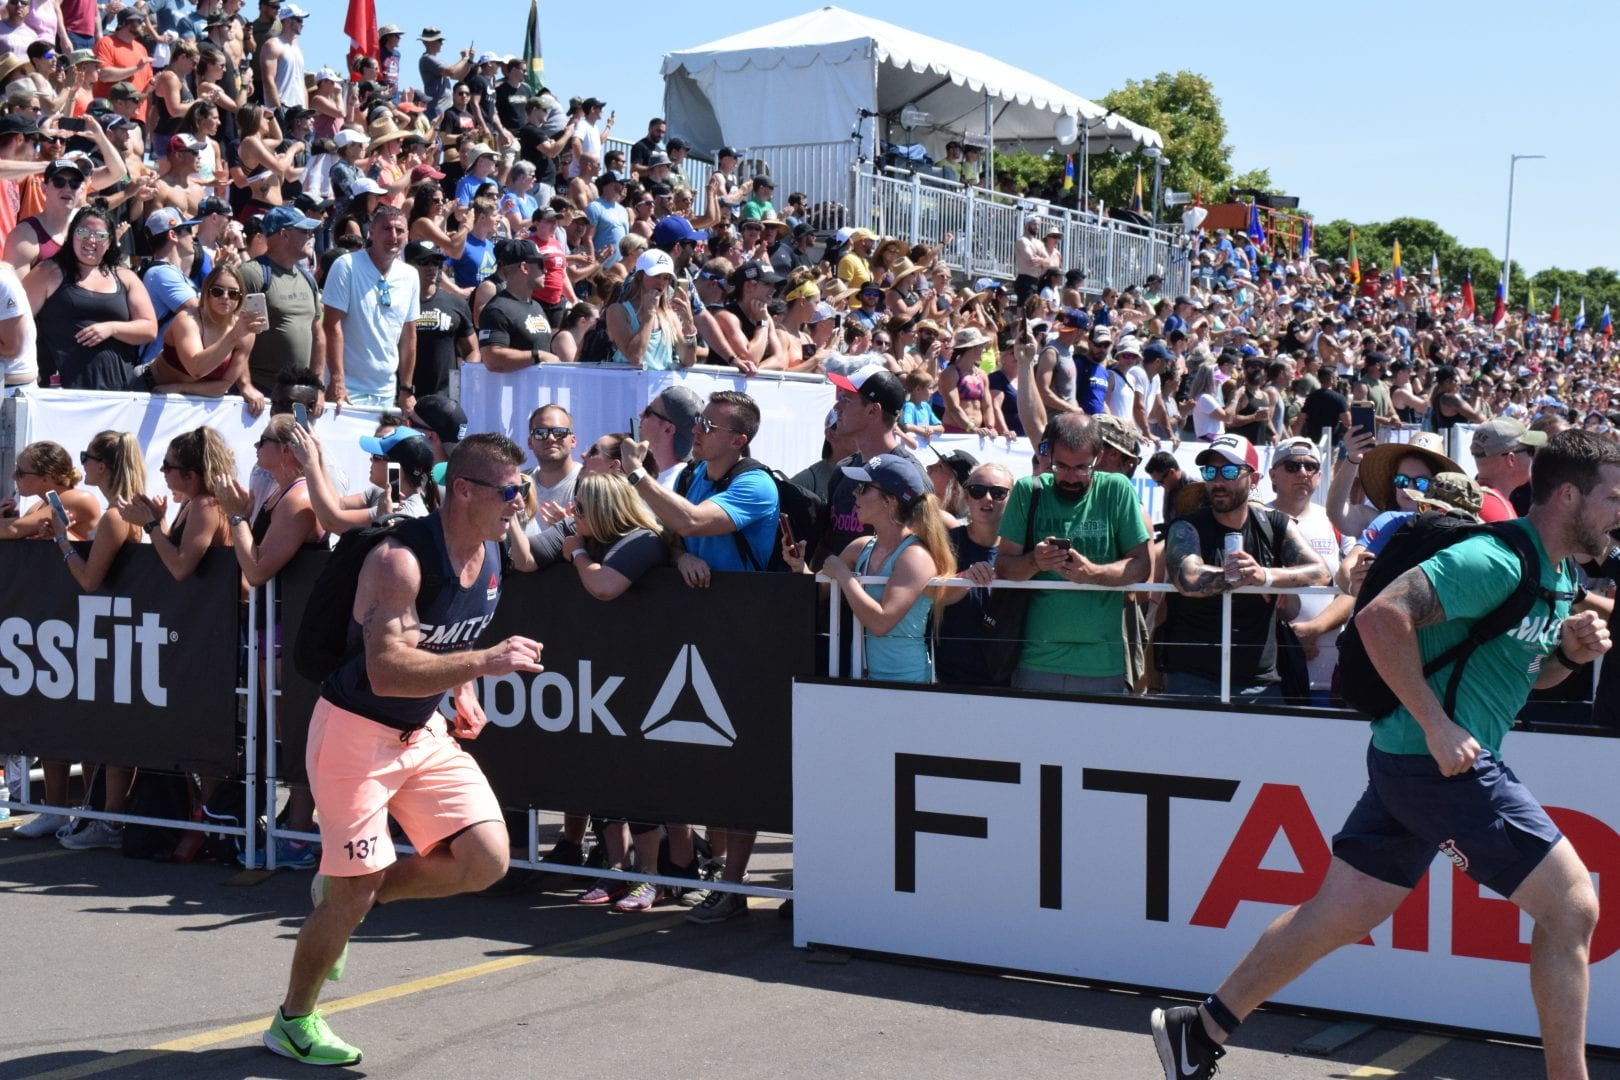 Jason Smith completes the Ruck Run event at the 2019 CrossFit Games.